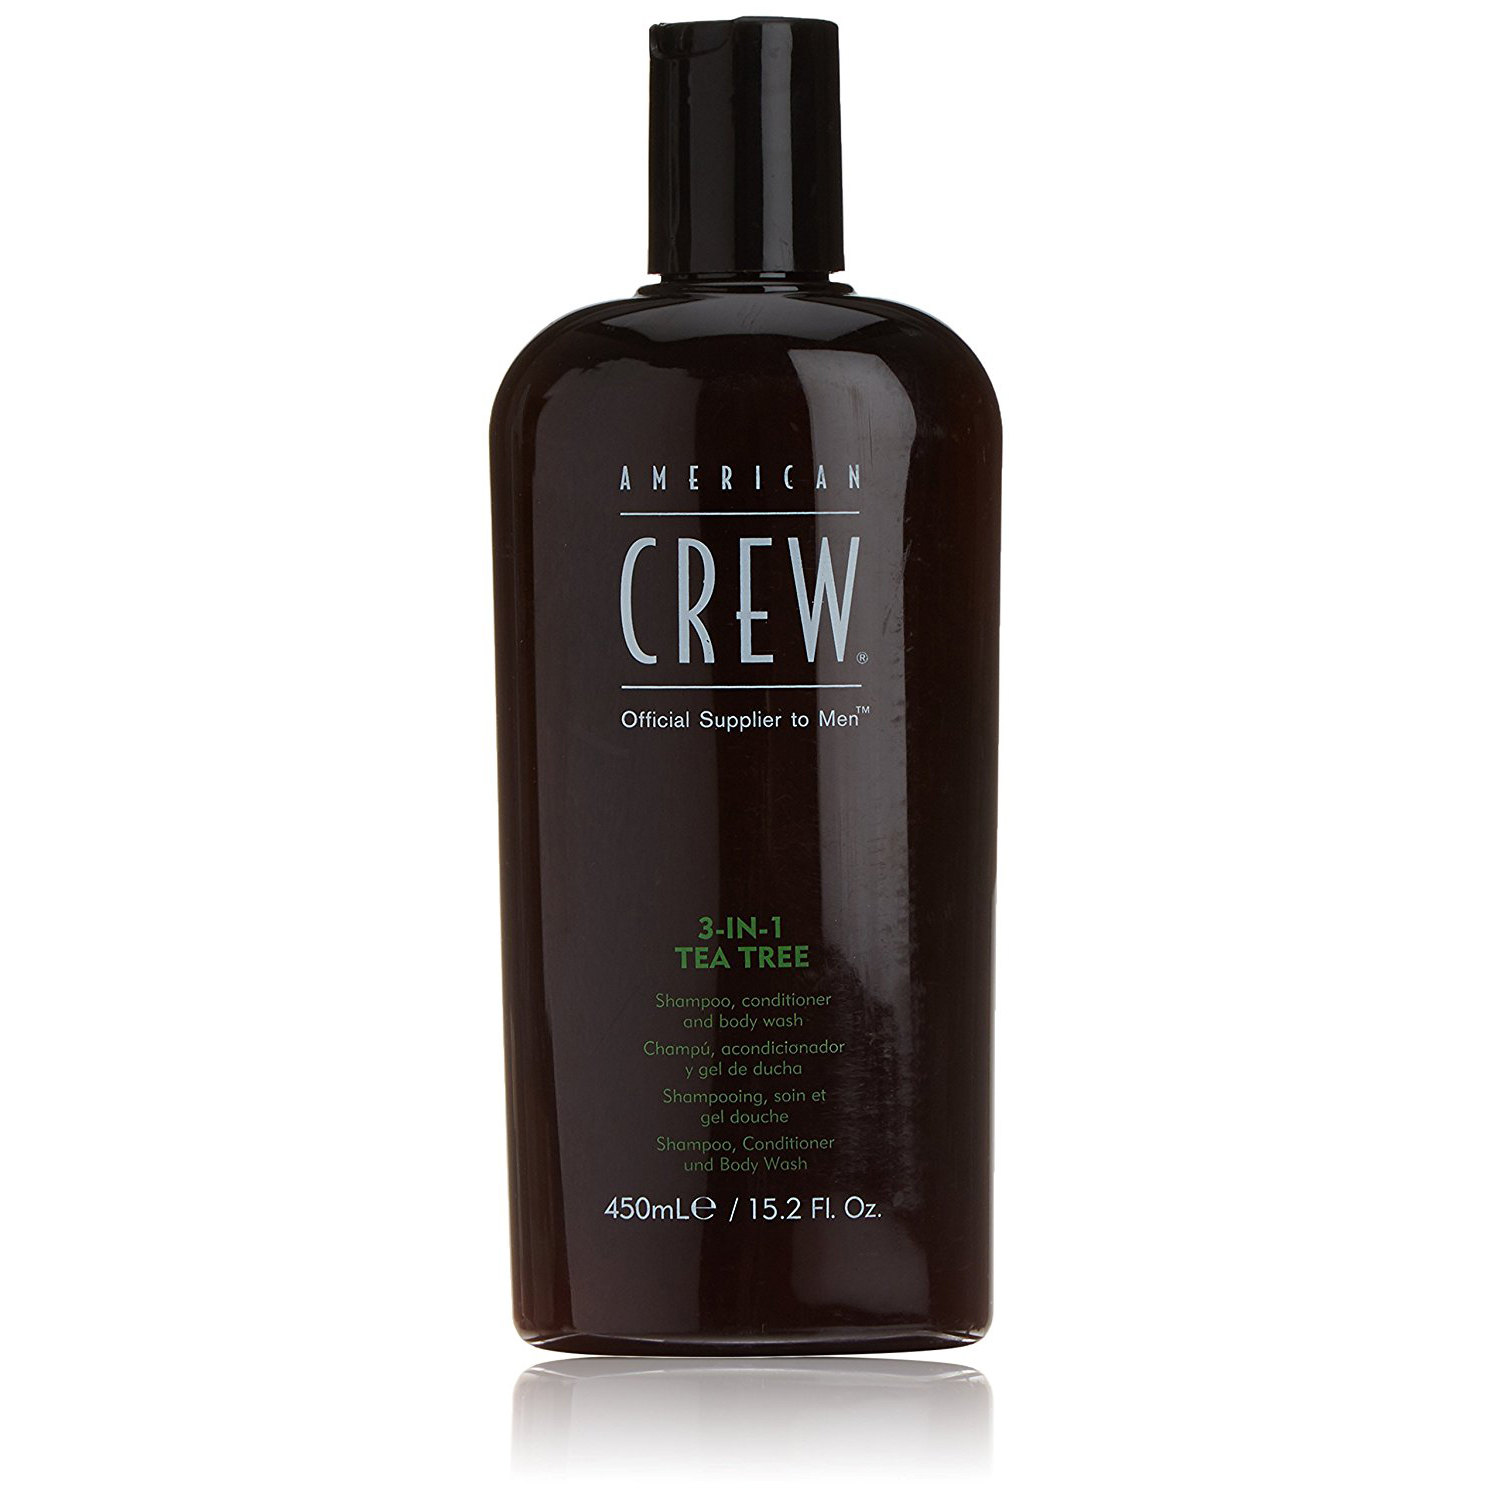 American Crew 3-in-1 Tea Tree -  šampón 3v1, 450 ml